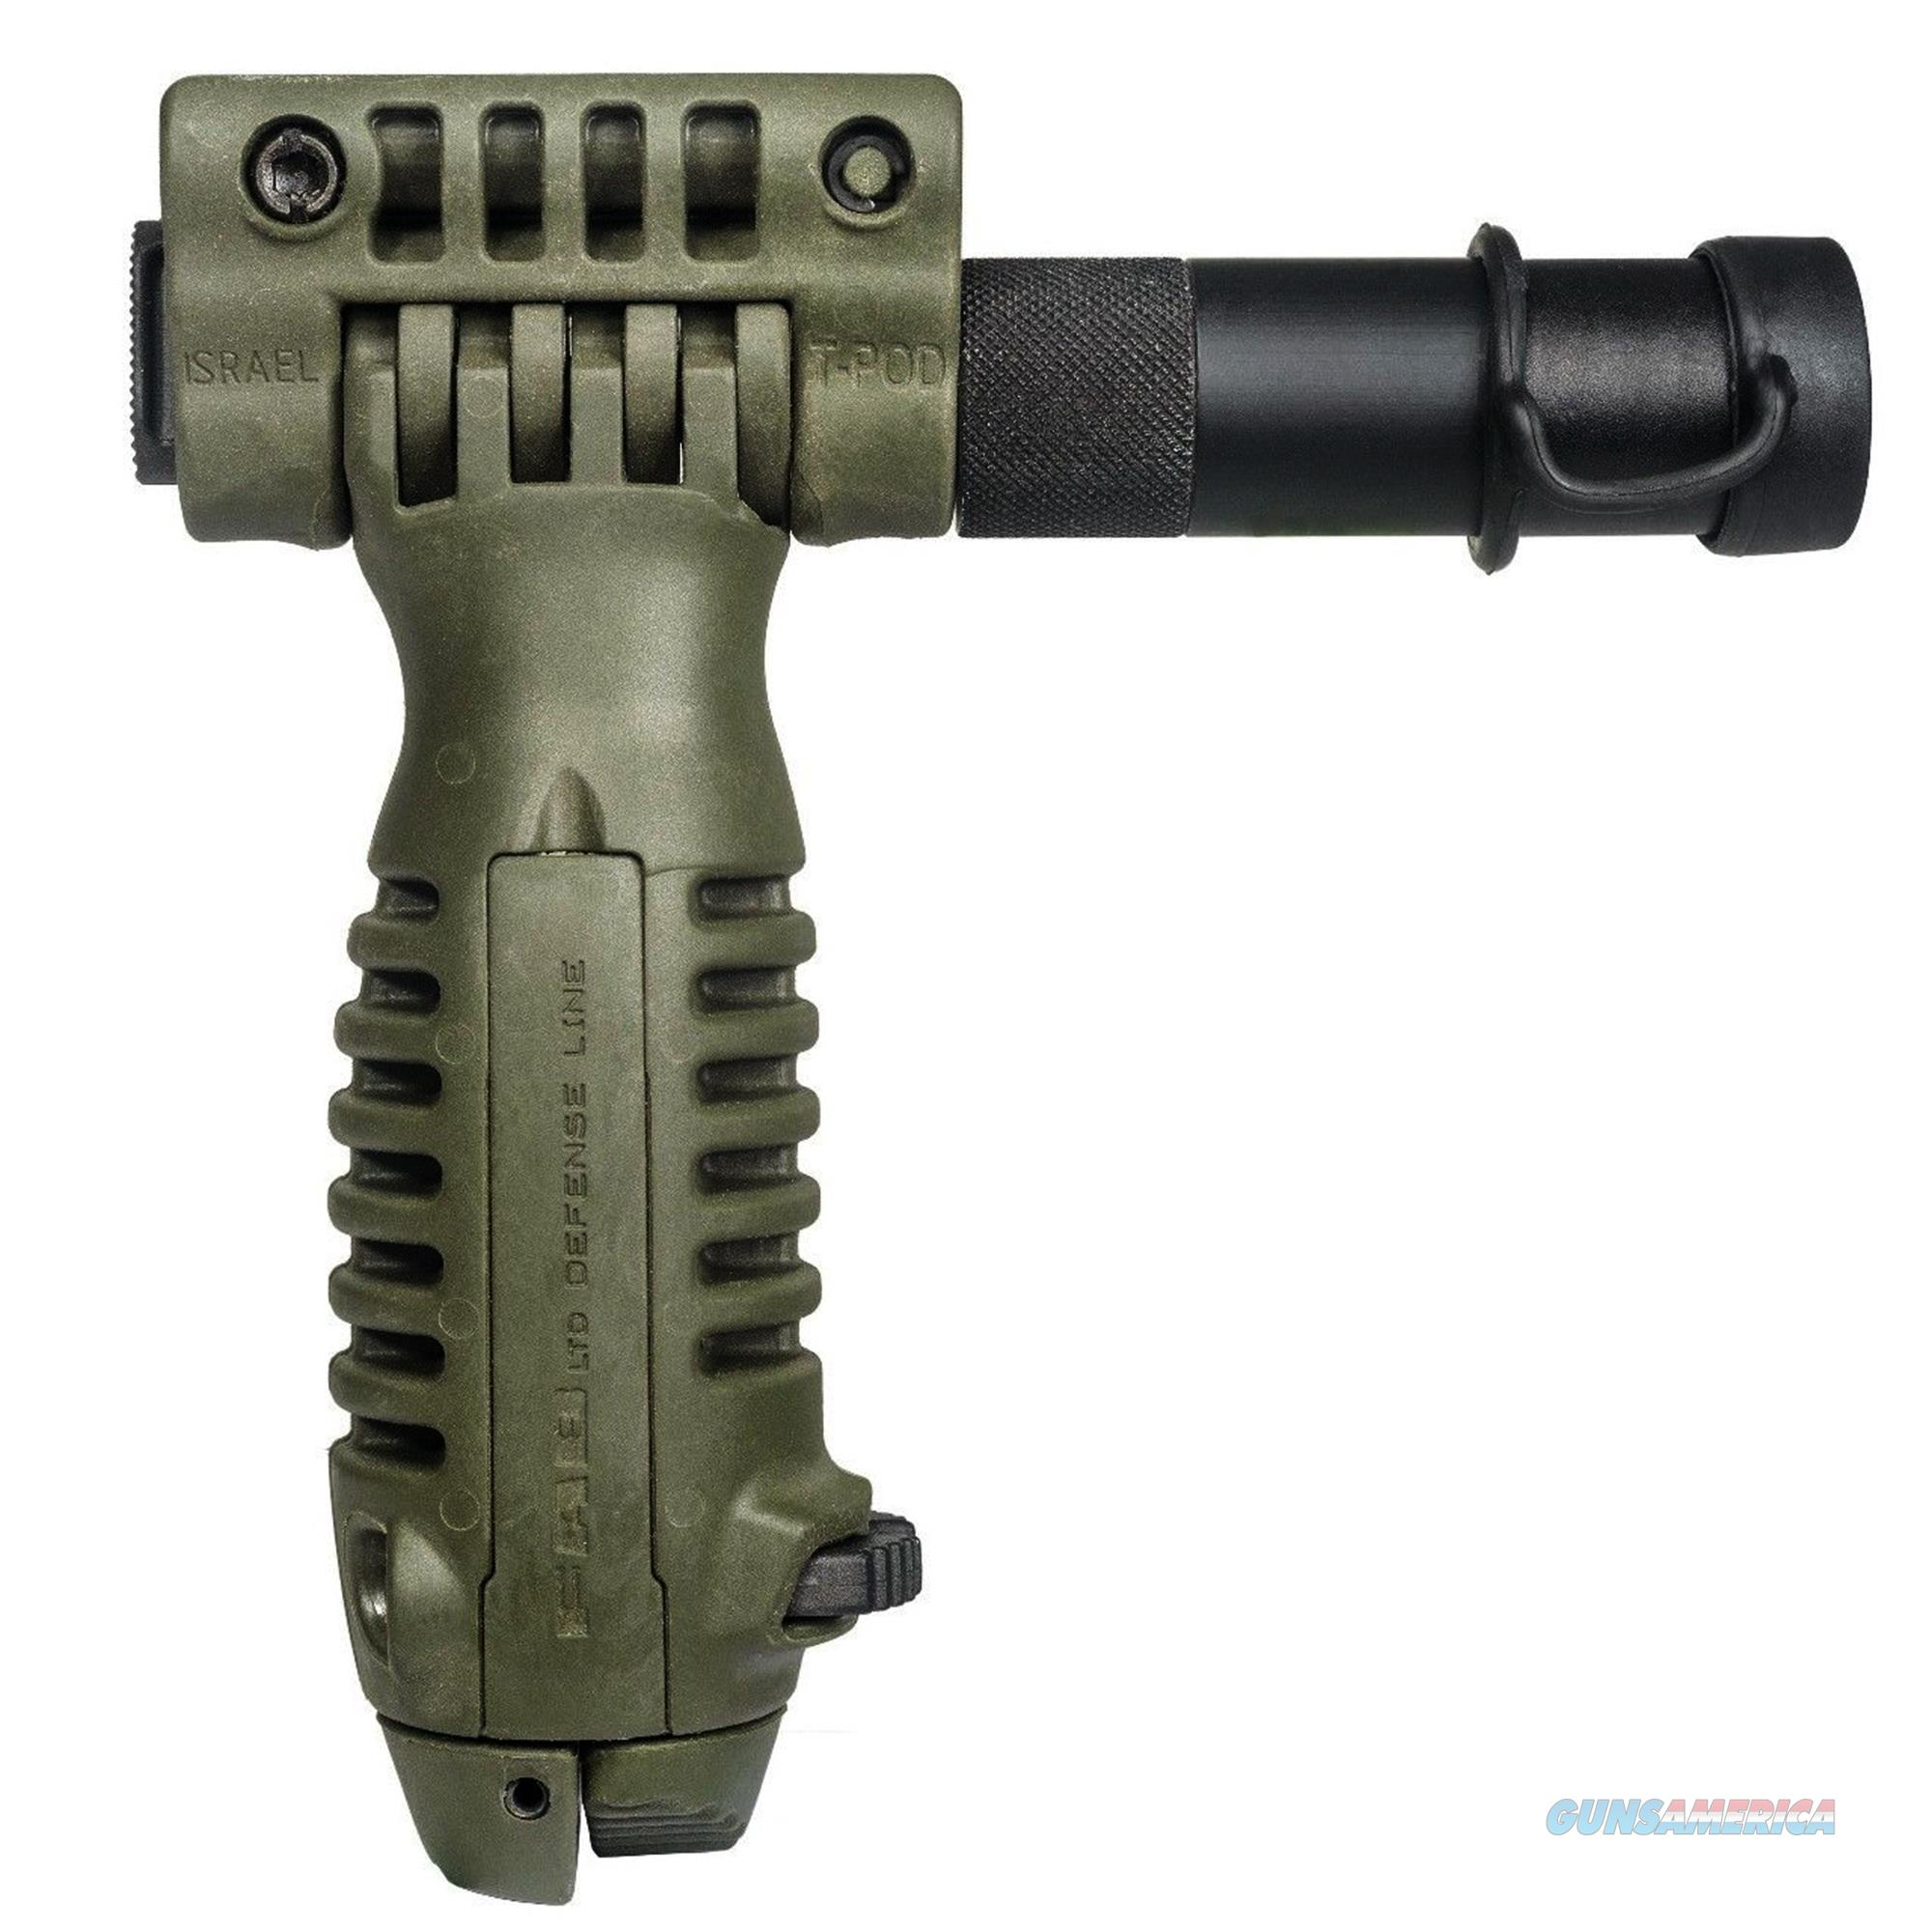 Mako Group Tactical Foregrip With Integrated Adjustable Bipod And Incorporated Flashlight T-PodSL-OD  Non-Guns > Gunstocks, Grips & Wood